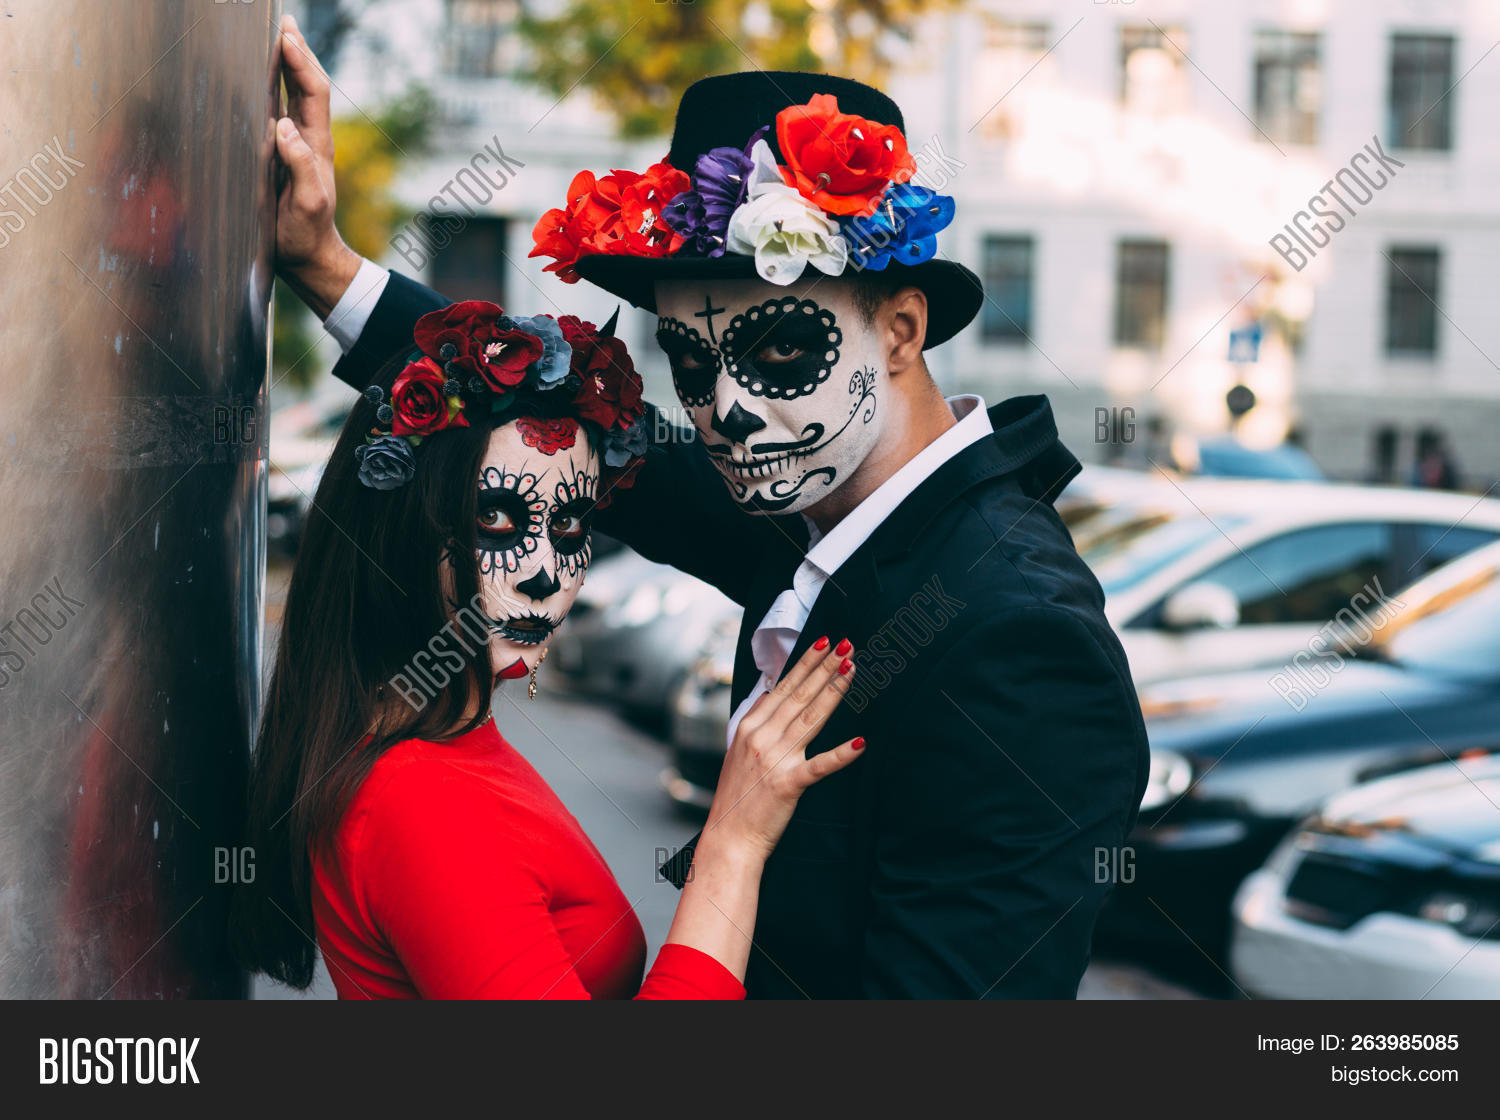 All Souls Day. Boy And Girl Sugar Skull Makeup.painted For Halloween  Standing On The Street. Dead In The City. Zombie Walk.day Of The Dead  Holiday In Mexico